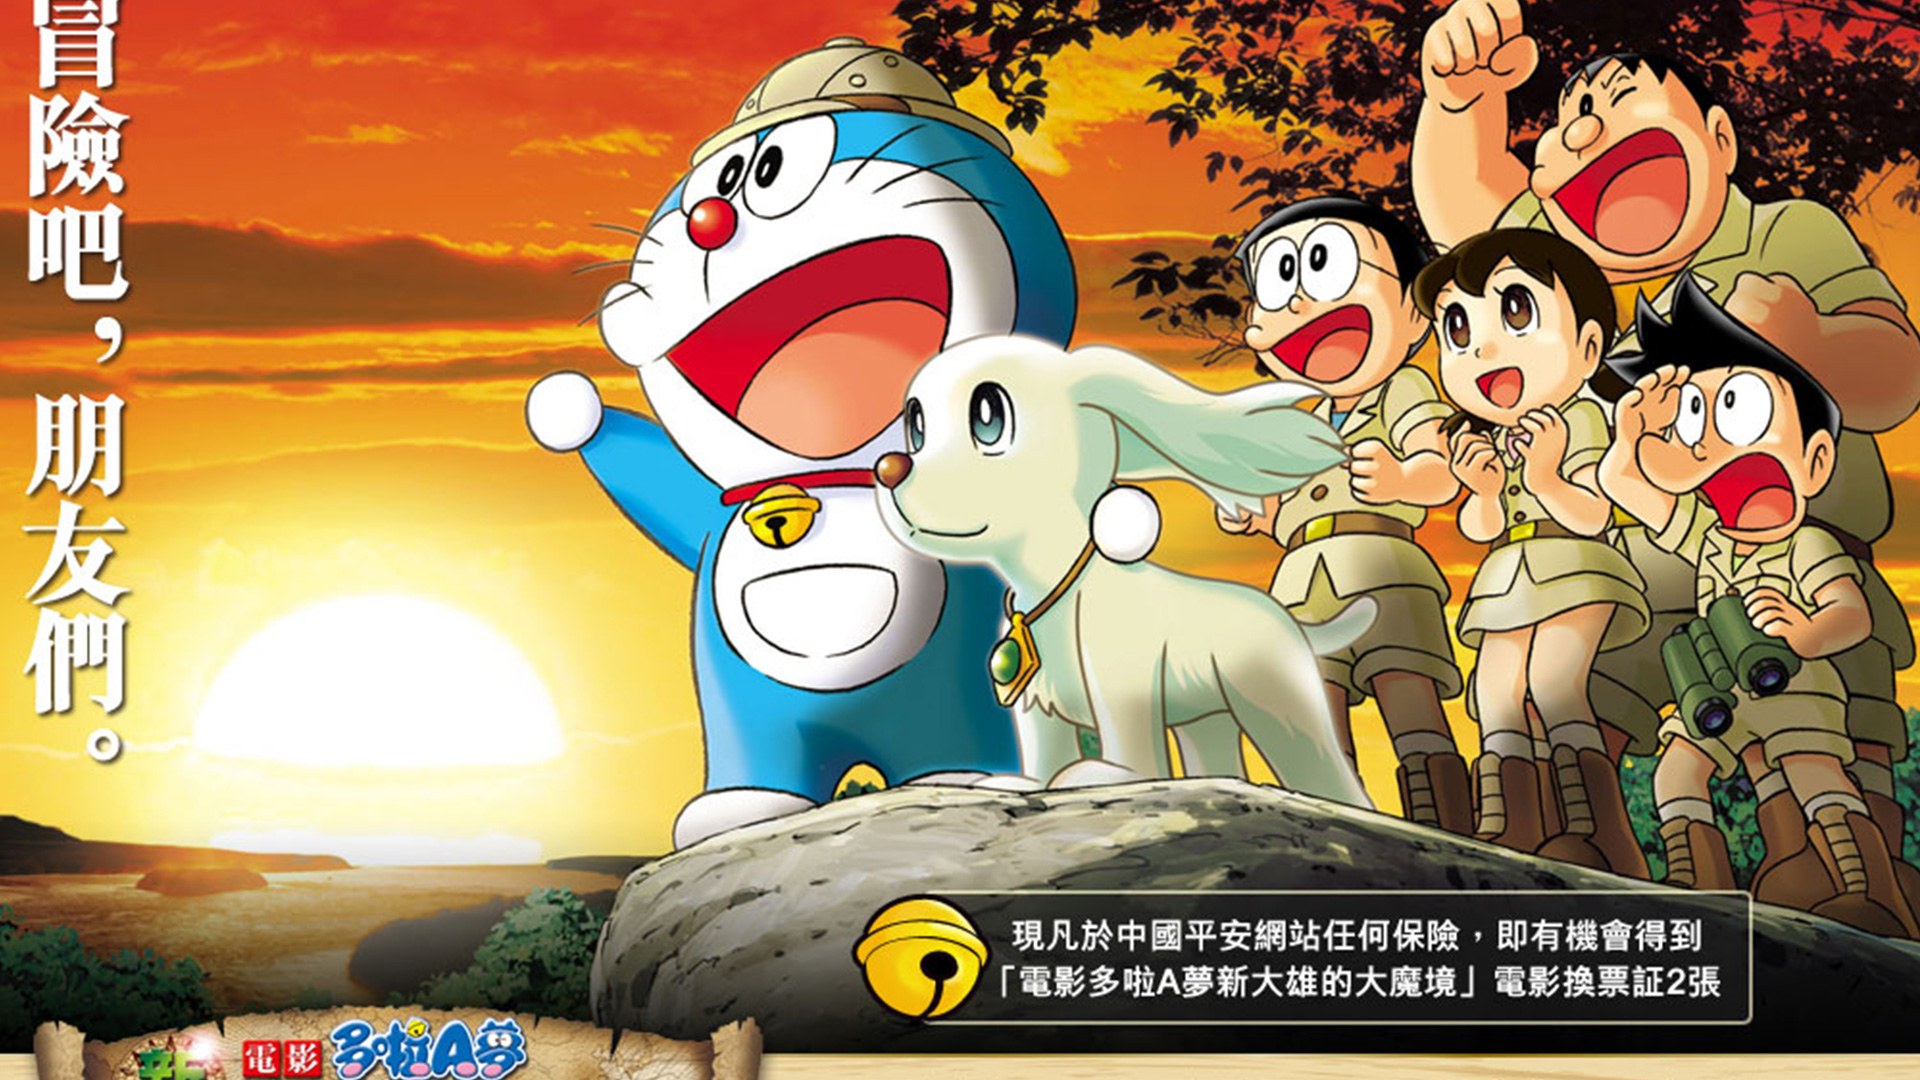 Doraemon Movie 2014 (CPA)